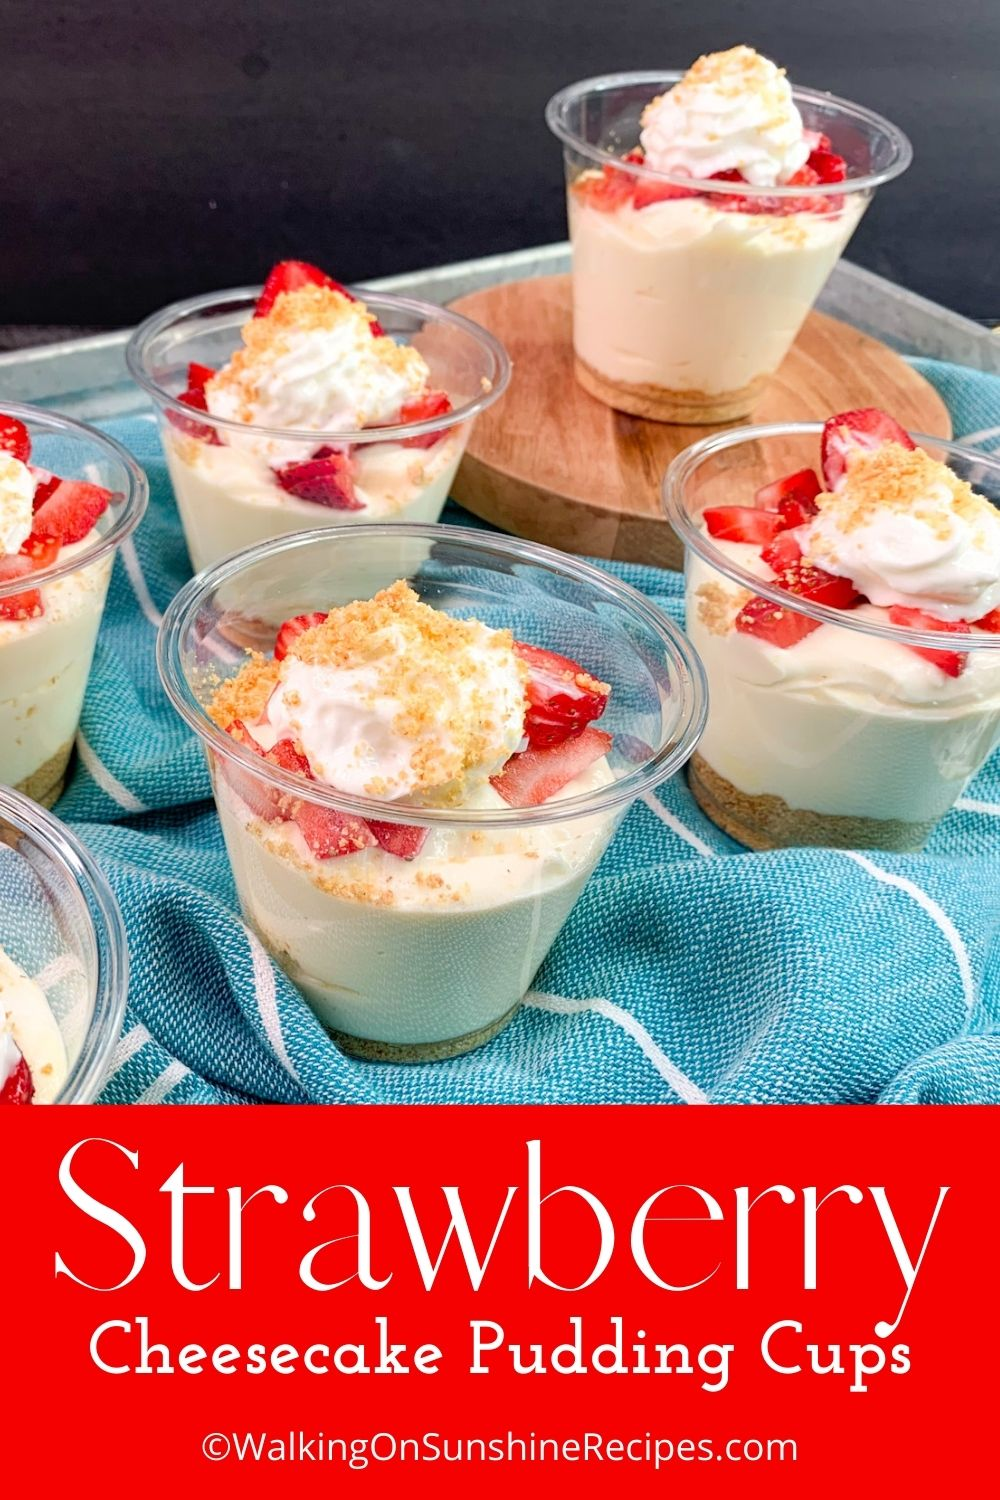 Small cups filled with pudding and fresh strawberries.